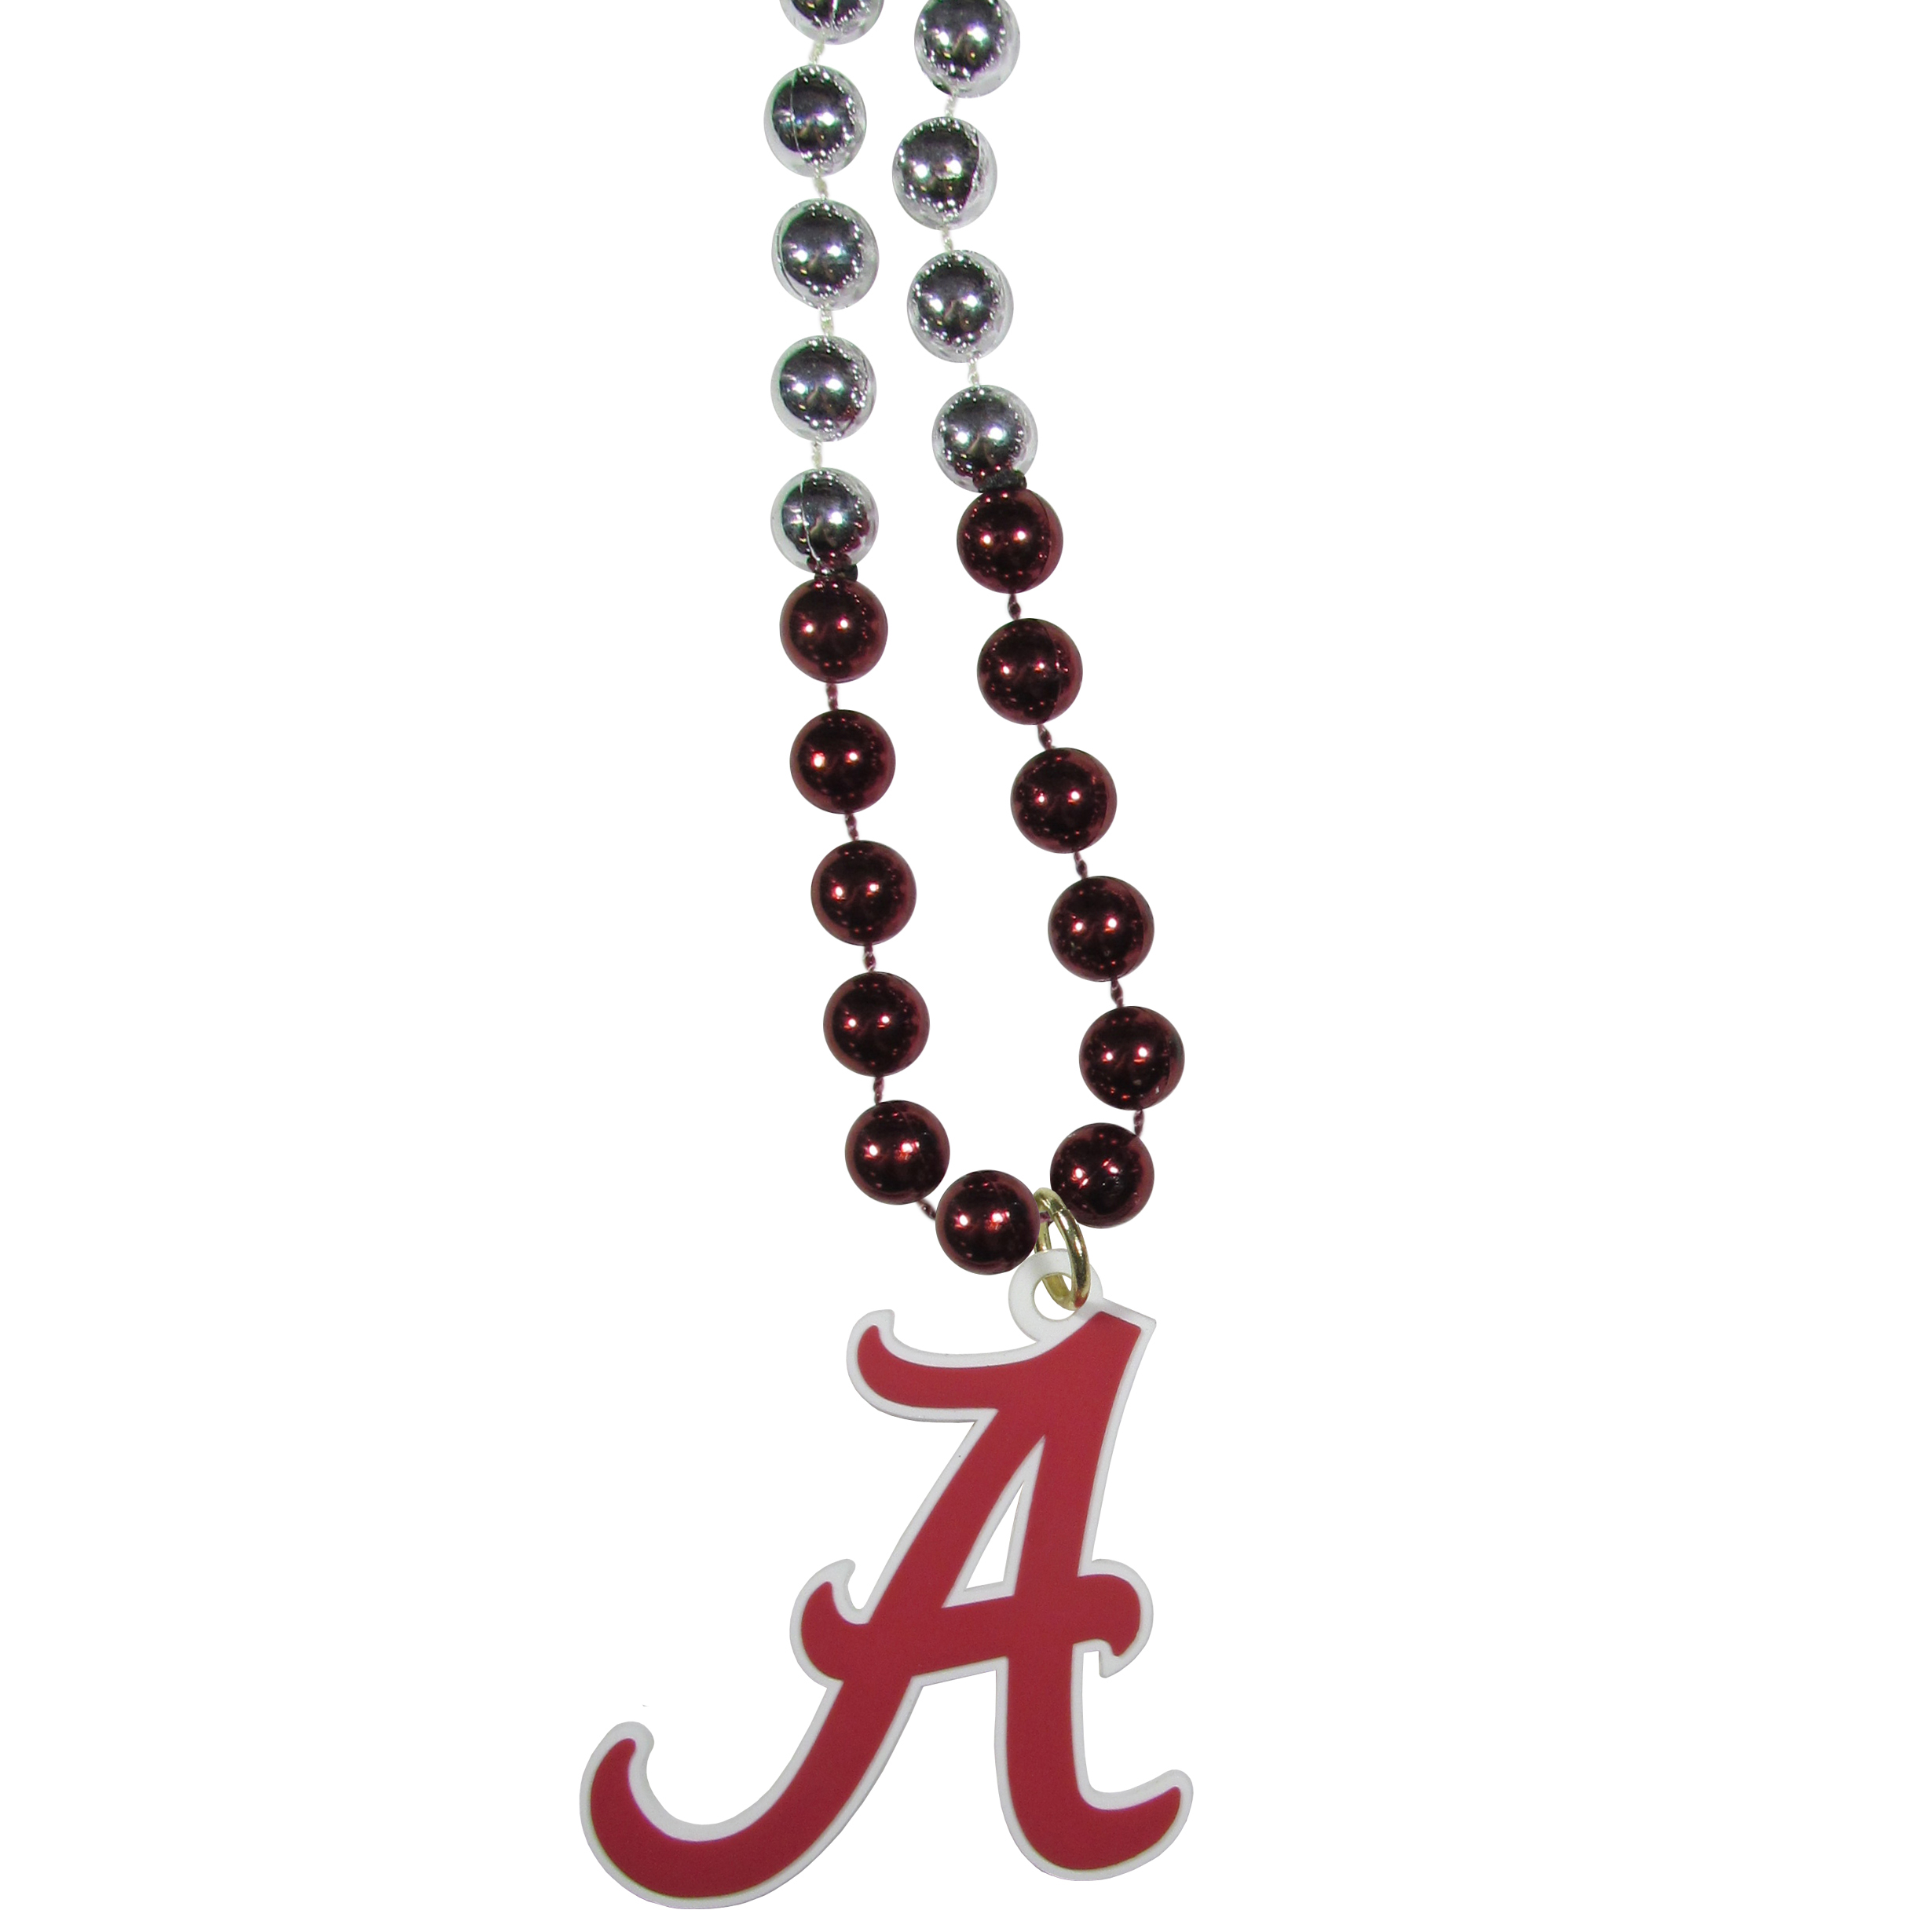 Alabama Crimson Tide Mardi Gras Necklace - Get the party started with this Mardi Gras inspired bead necklace. The flashy beads have a shiny finish and come in bright team colors strung together on a 36 inch string so you can make a big statement on game day! The beads come with an extra large flexible team logo that is a full 3 inches at its widest point. This trendy and bold necklace screams out your Alabama Crimson Tide pride and is a must have at game time!